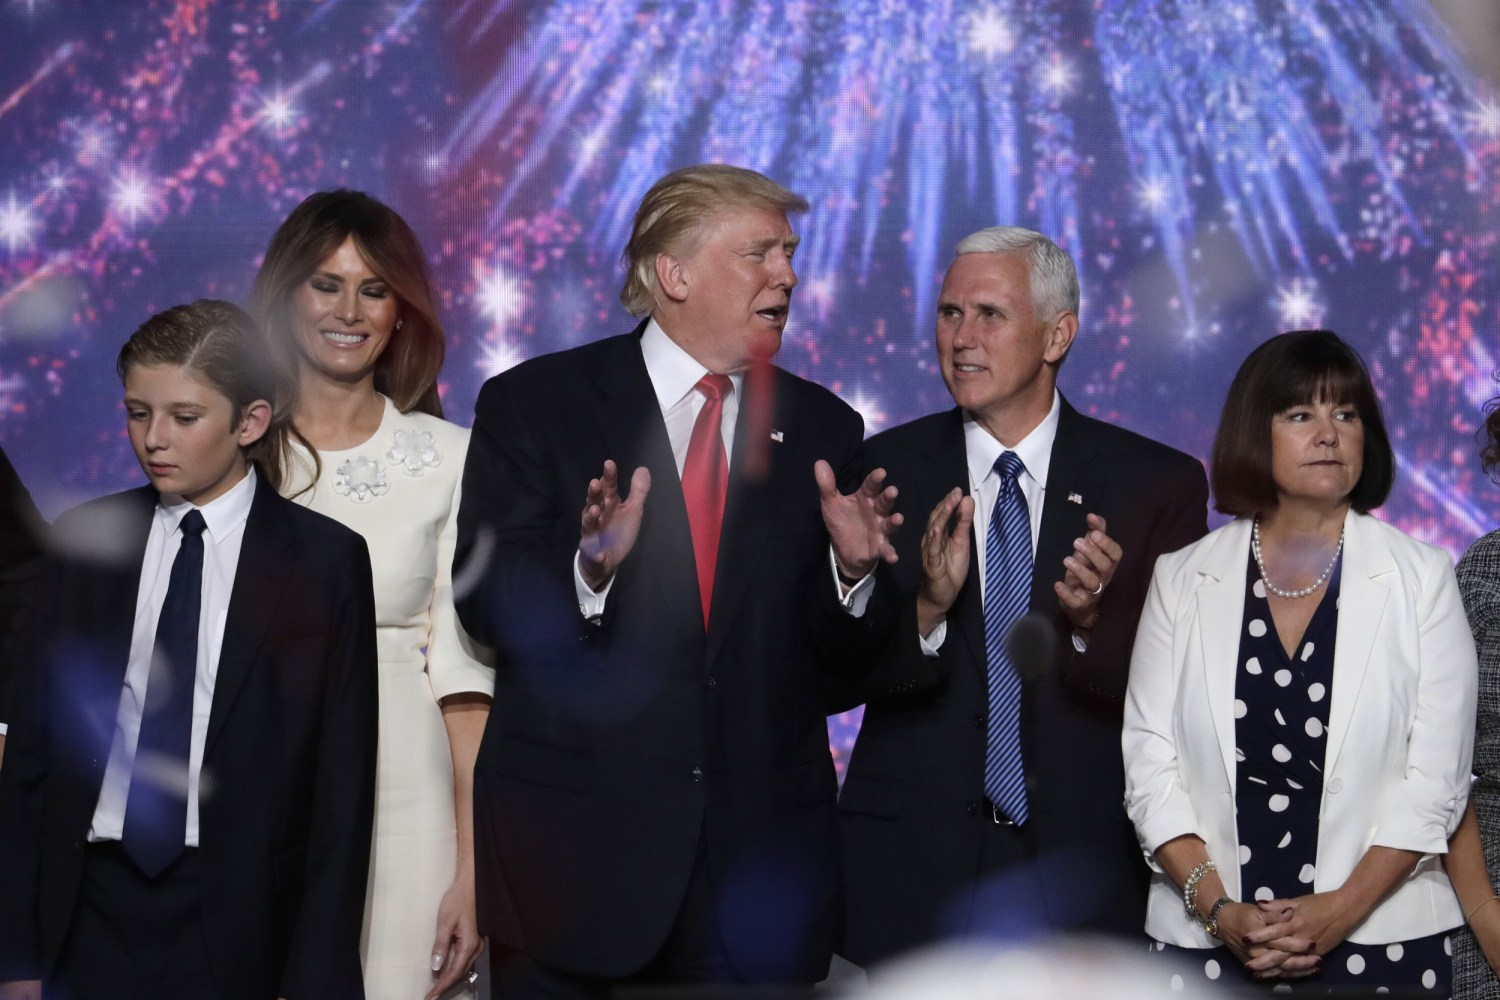 Vice President Mike Pence spoke at Camp David after holding meetings with  President Donald Trump on